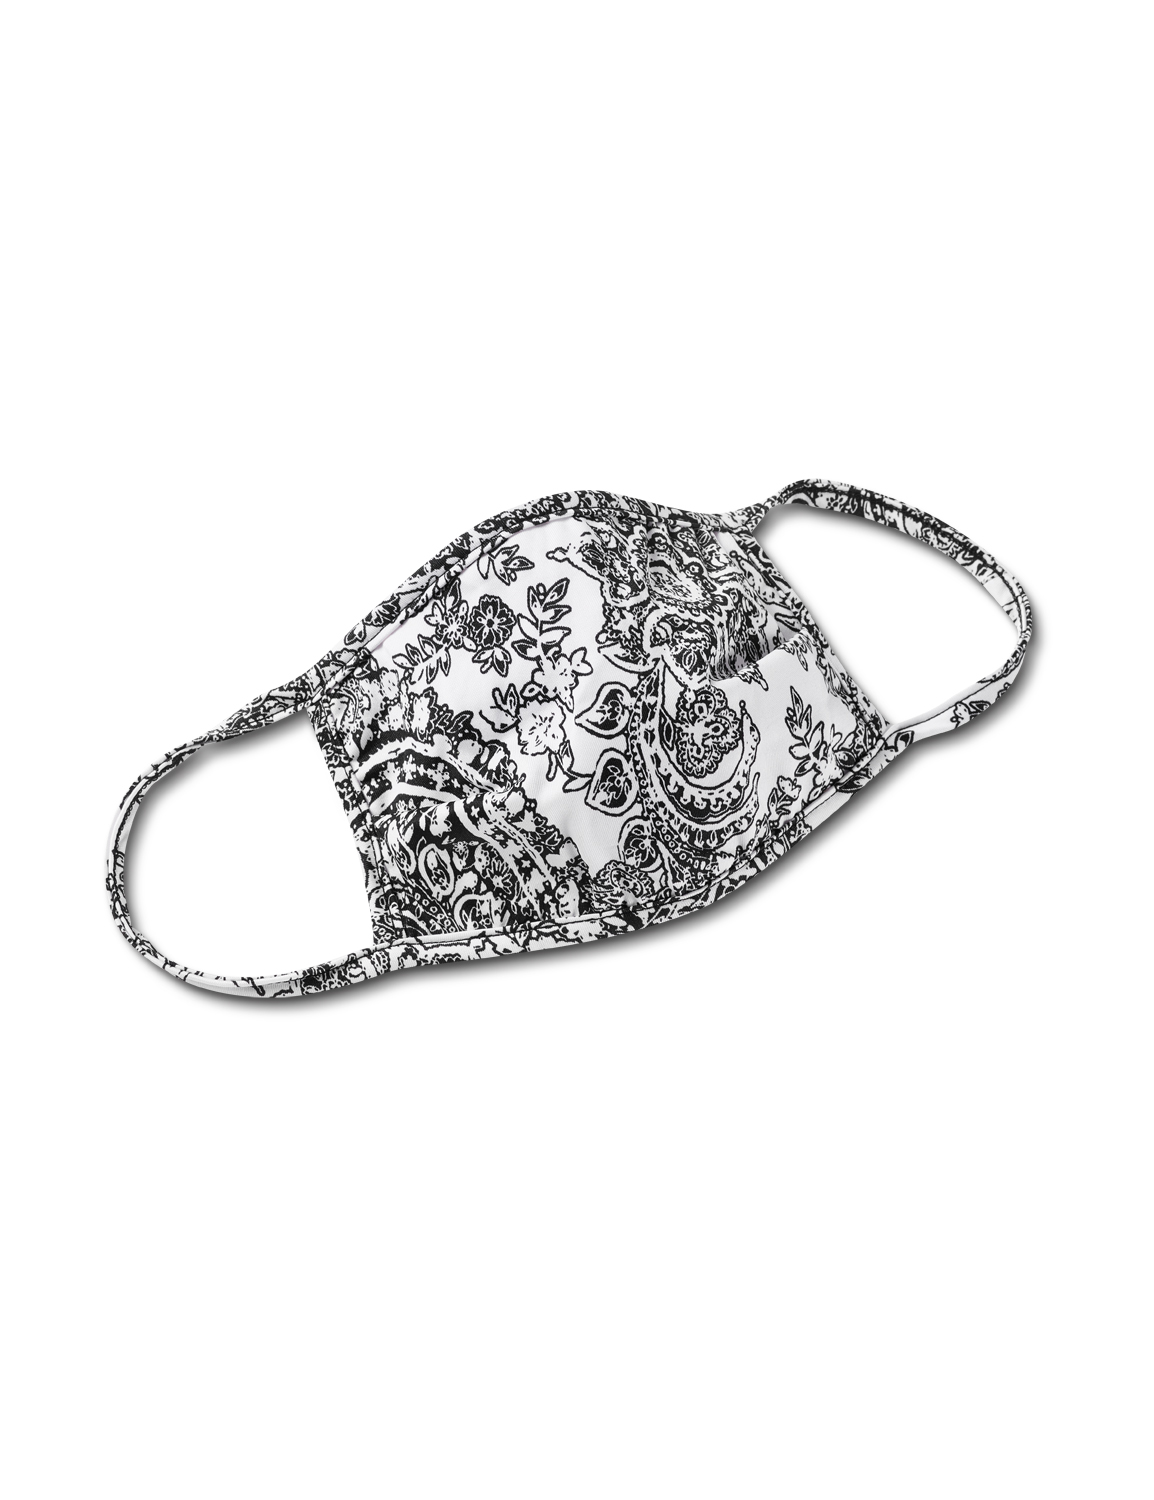 Etched Floral Fashion Mask -Black / White - Front